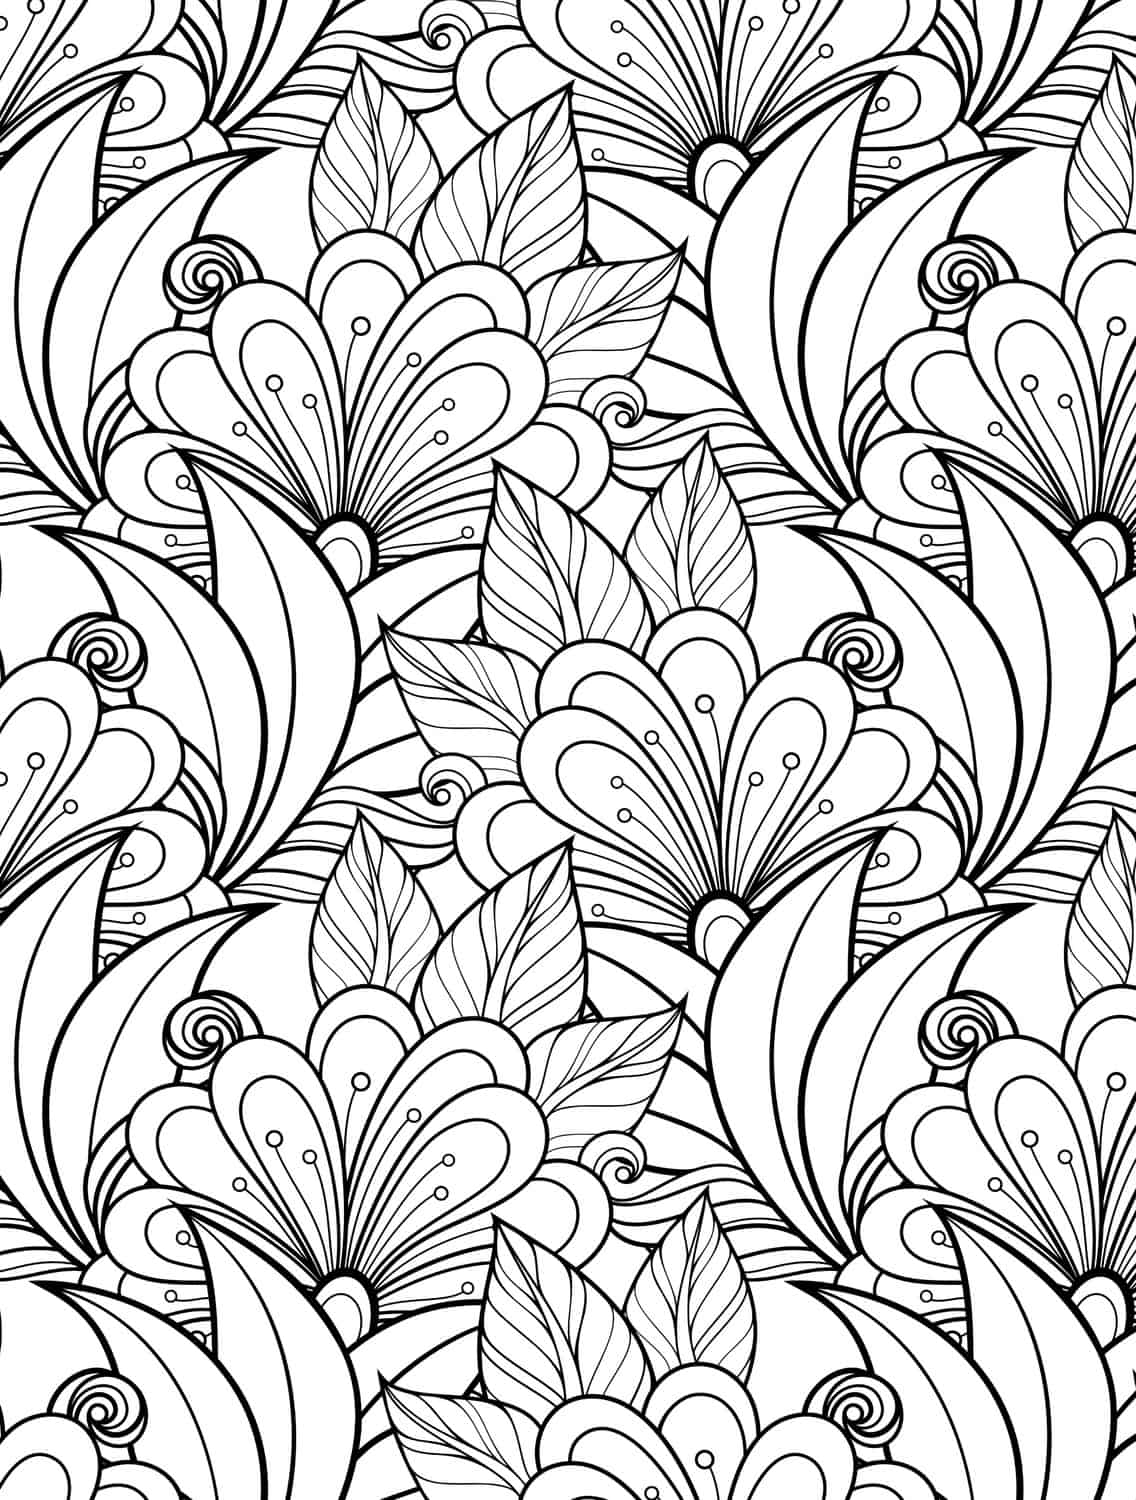 coloring pages free printable full size pictures to color - HD 2500×3300